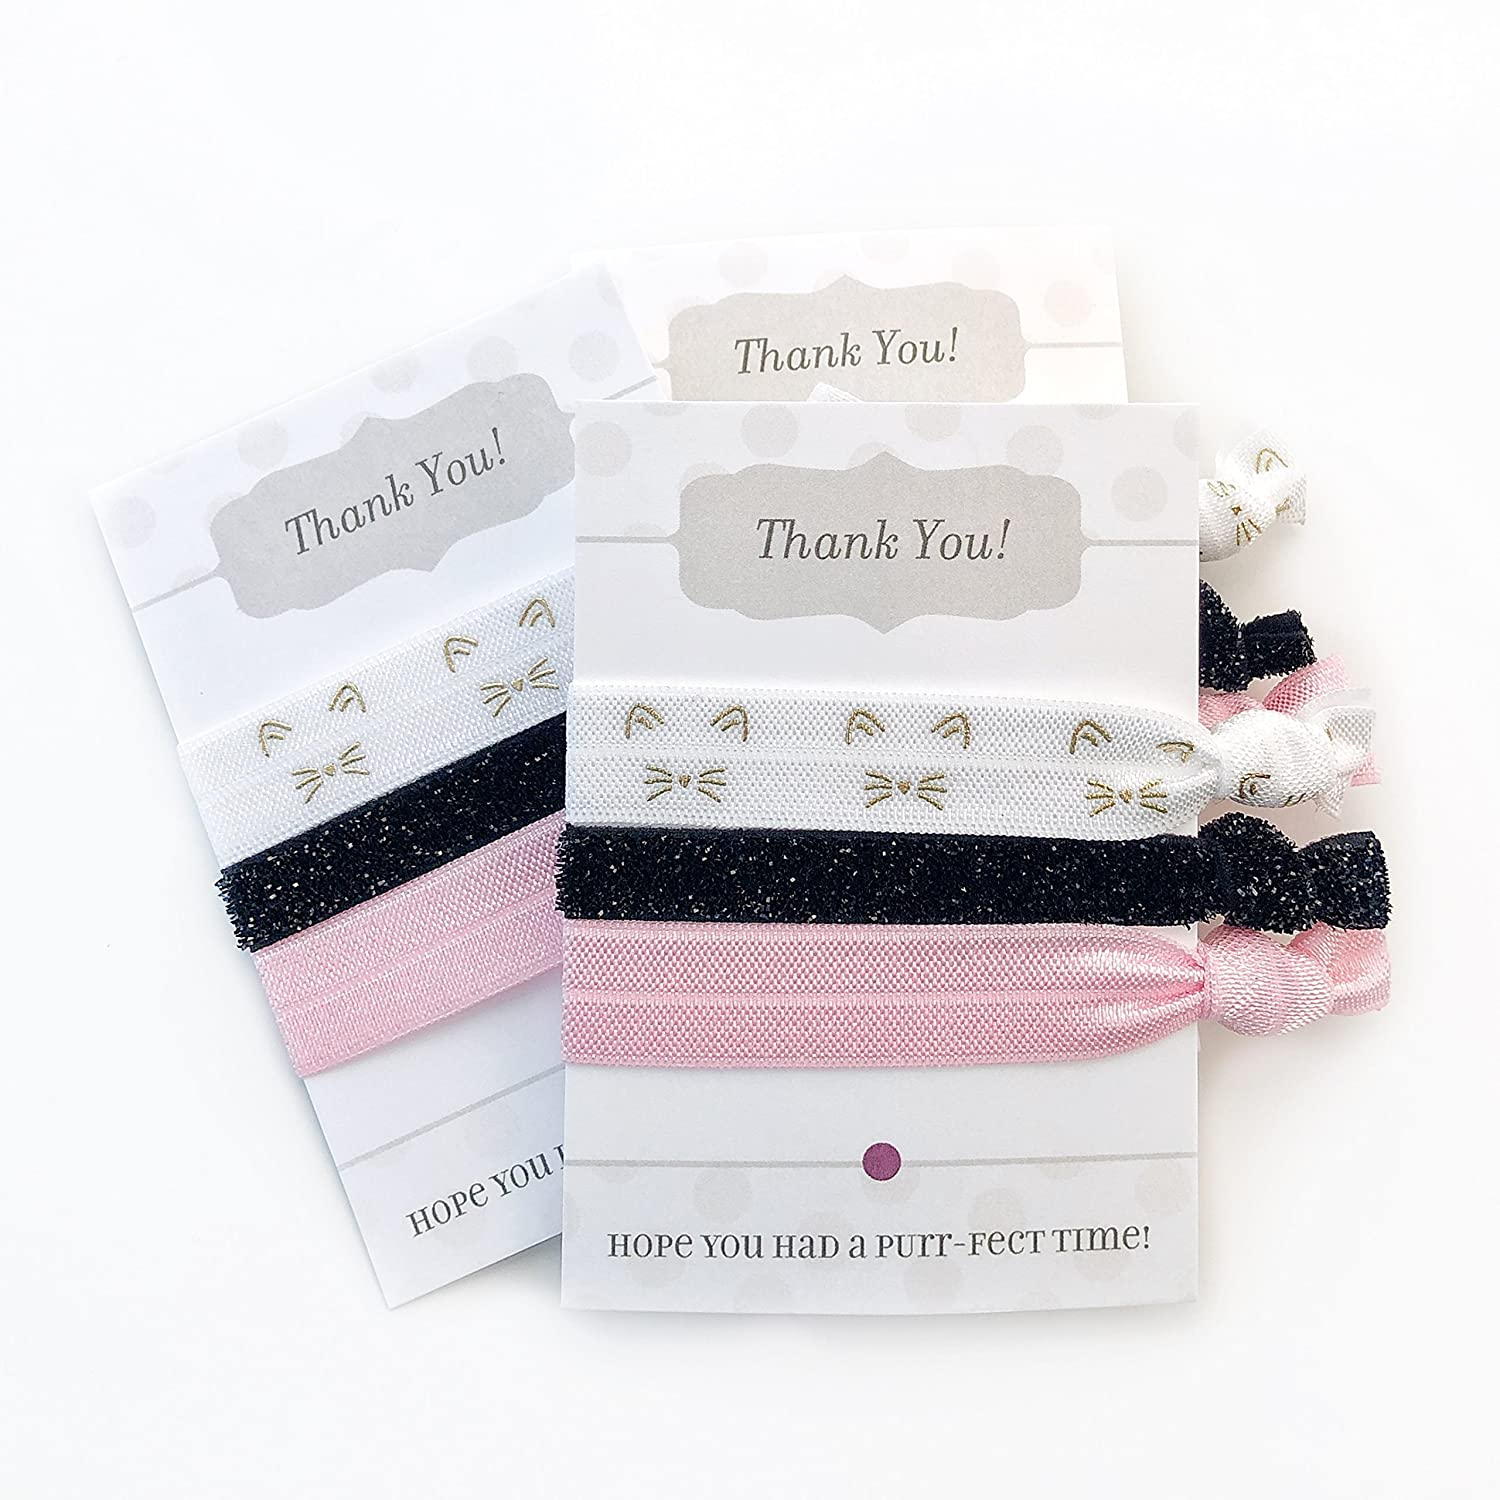 Kitty Cat Party Favours - Hair Ties (5 Pack)